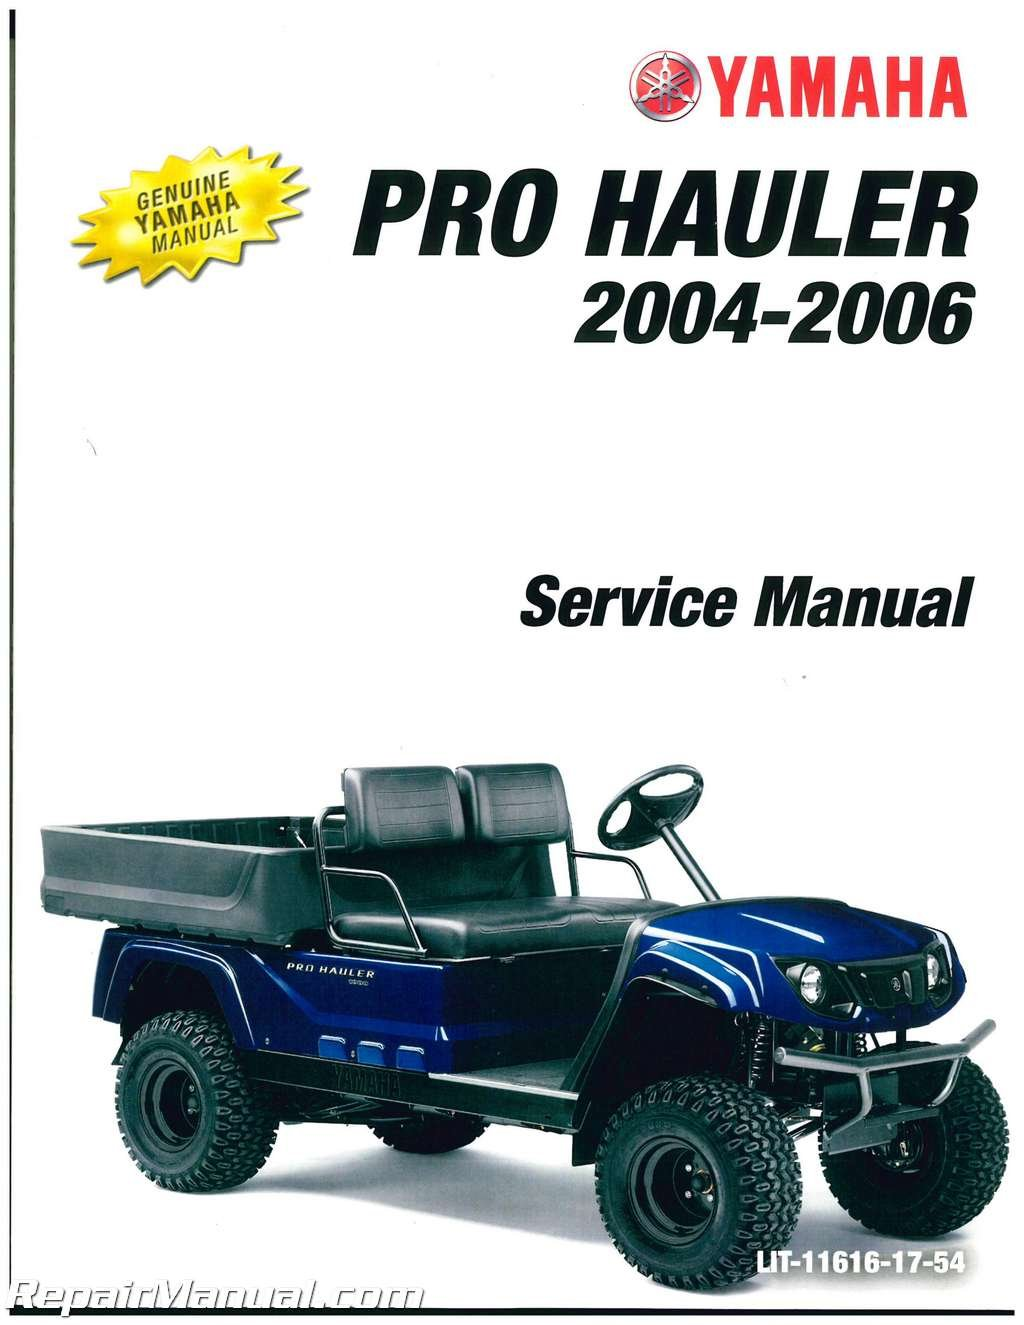 Download LIT-11616-17-54 2004 2005 2006 Yamaha YXP1000 YXP700 PRO HAULER Service Manual ebook